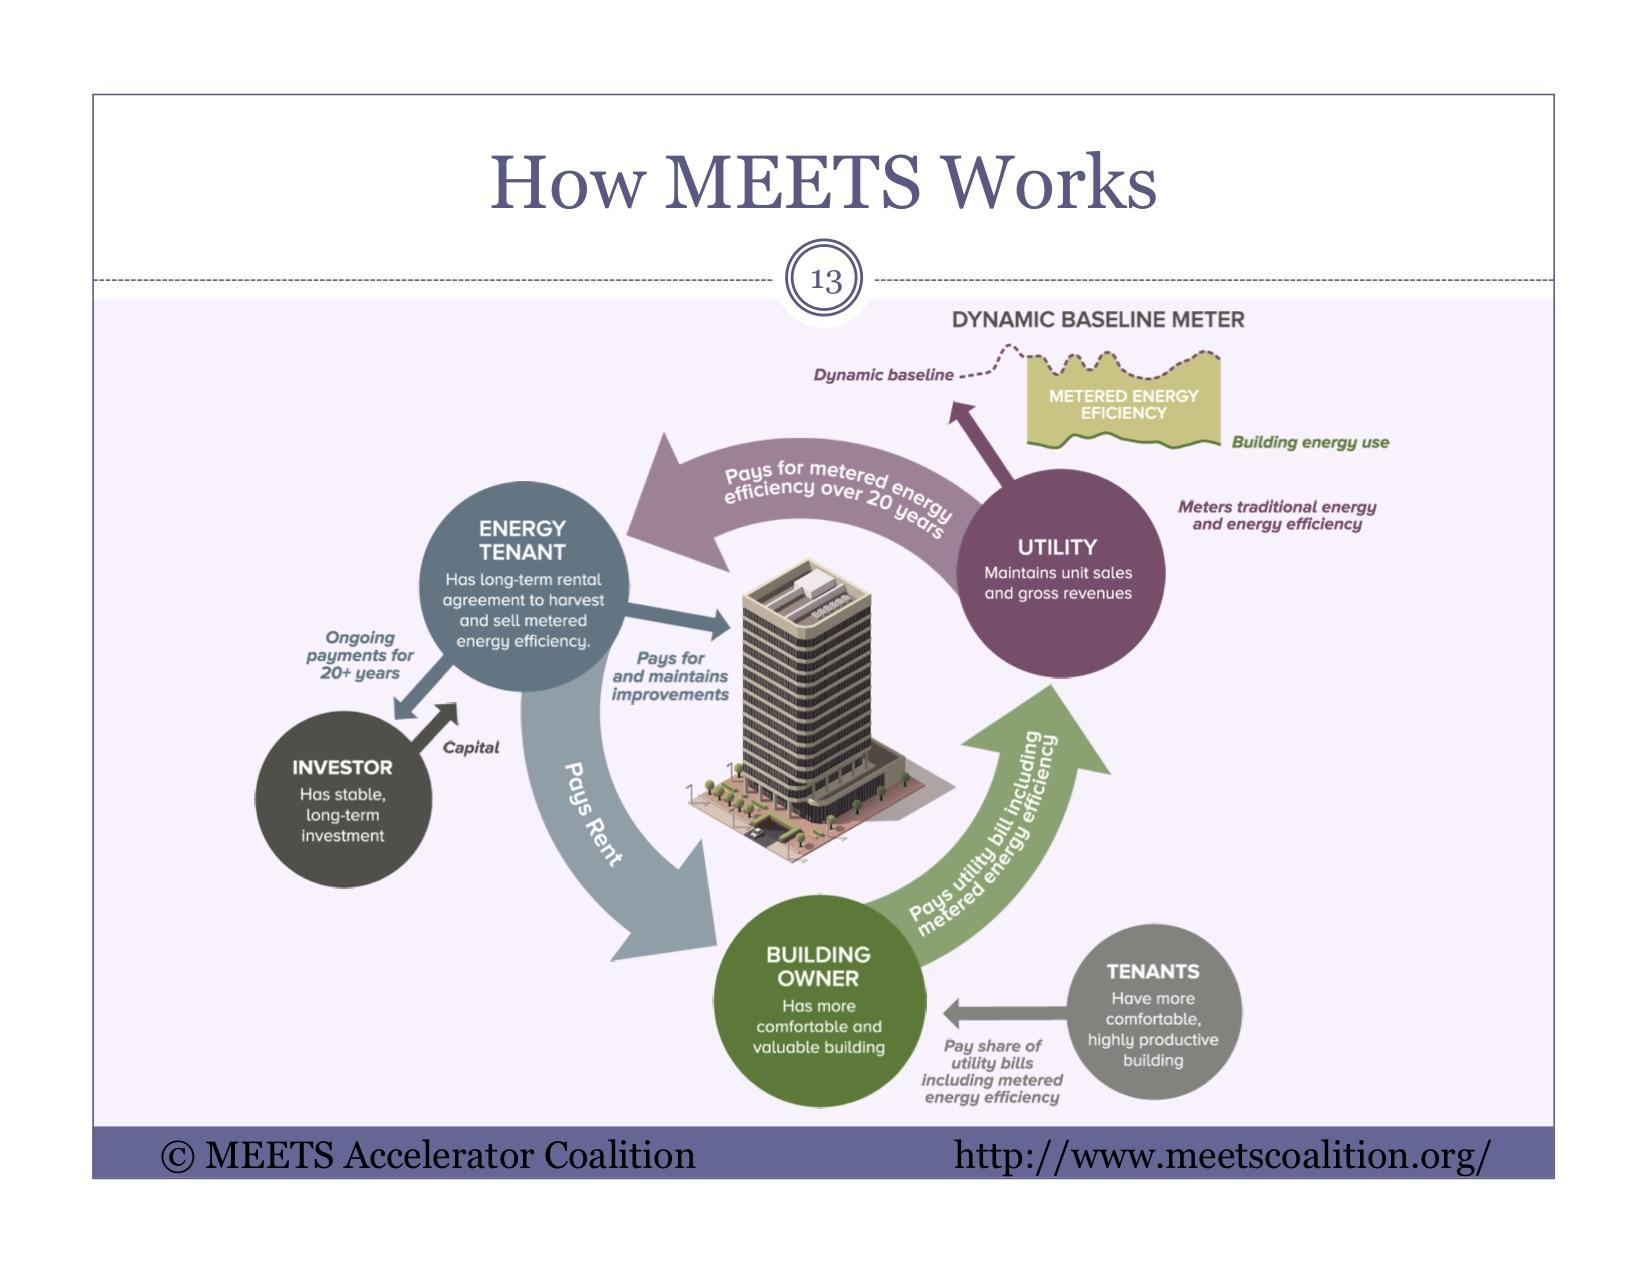 This Diagram Shows How Pilot Program From Seattle City Light Works To  Encourage Investments In Energy Efficiency For Buildings.